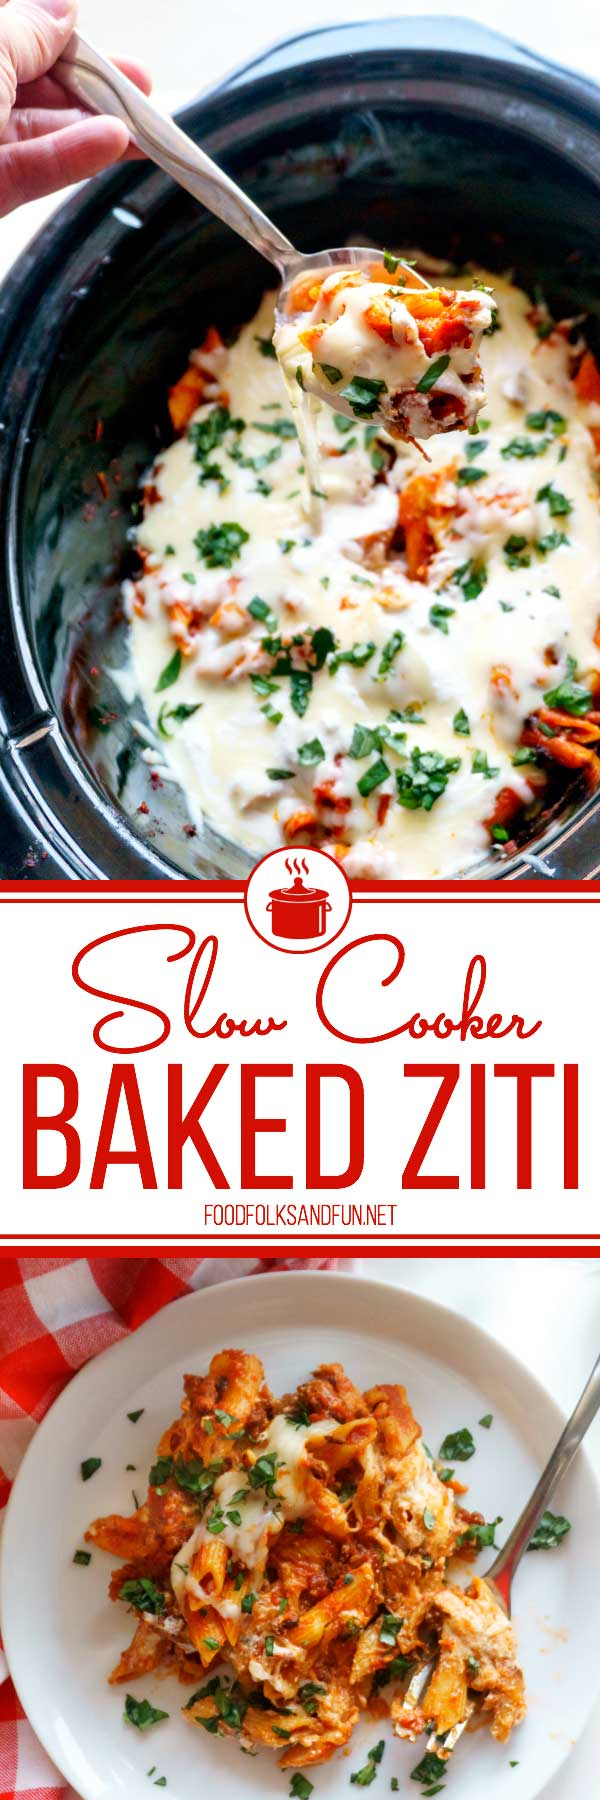 This Slow Cooker Baked Ziti recipe is the perfect dinner recipe for year-round cooking. It's great for weeknight dinners and for company! Plus, it tastes pretty amazing--I mean just look at all of that melty cheese! #slowcooker #crockpot #dinner #pasta #carbs #ItalianFood #ItalianRecipe #foodfolksandfun via @foodfolksandfun